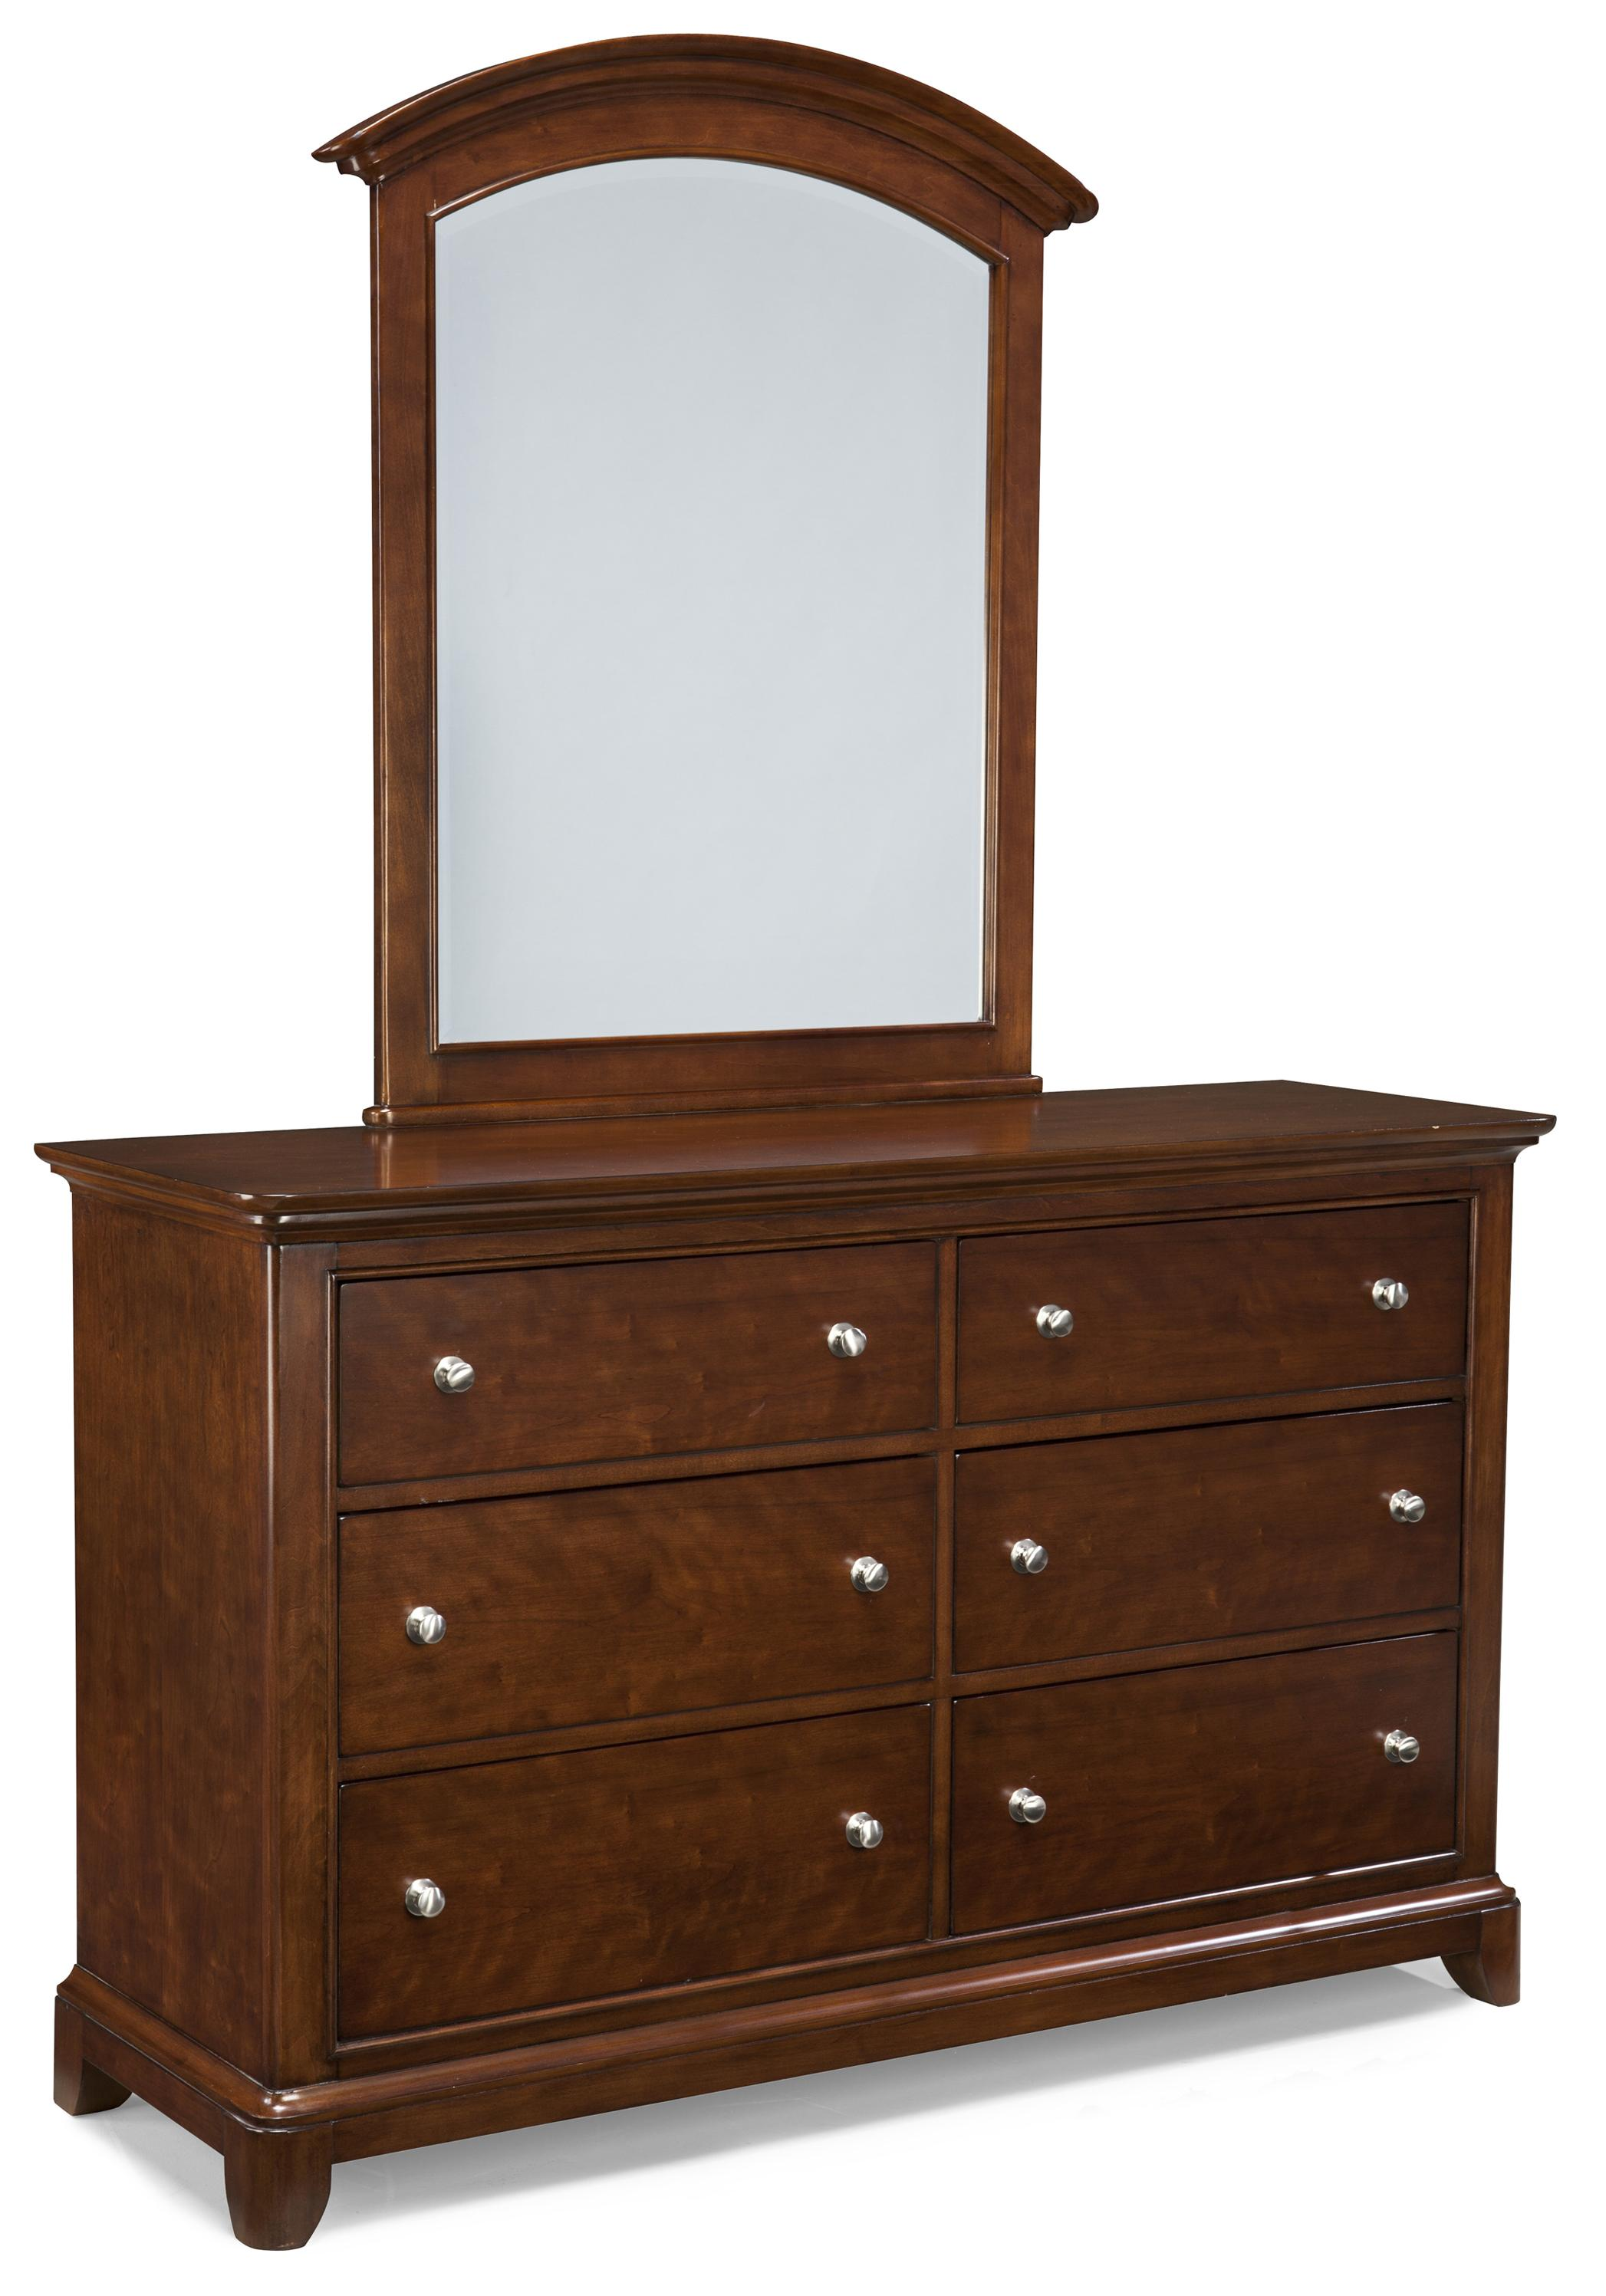 Legacy Classic Kids Impressions Dresser and Mirror Set - Item Number: 2880-1100+0100